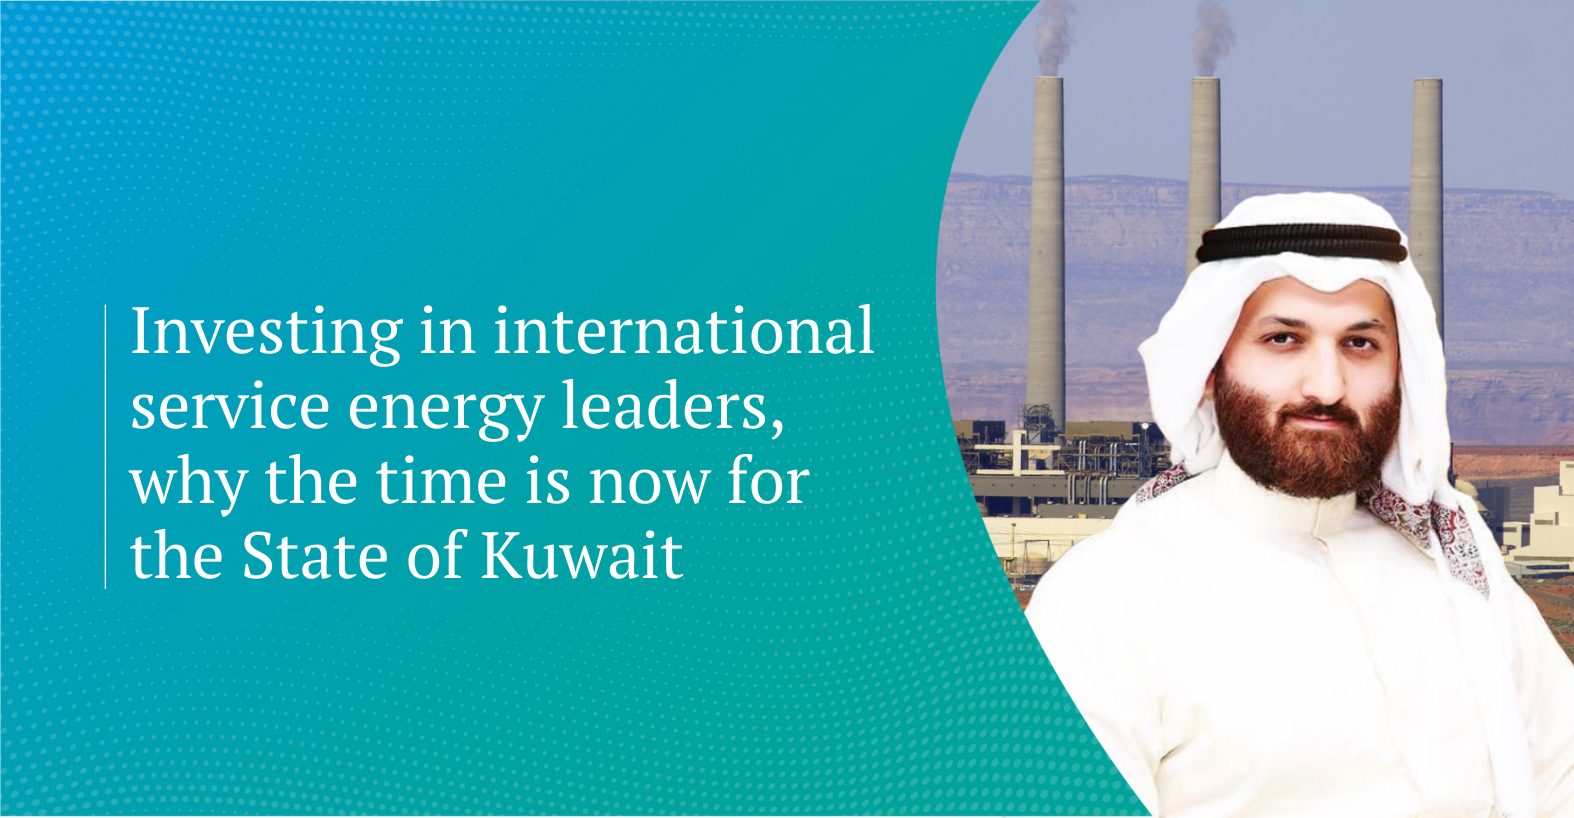 Investing in international service energy leaders, why the time is now for the State of Kuwait